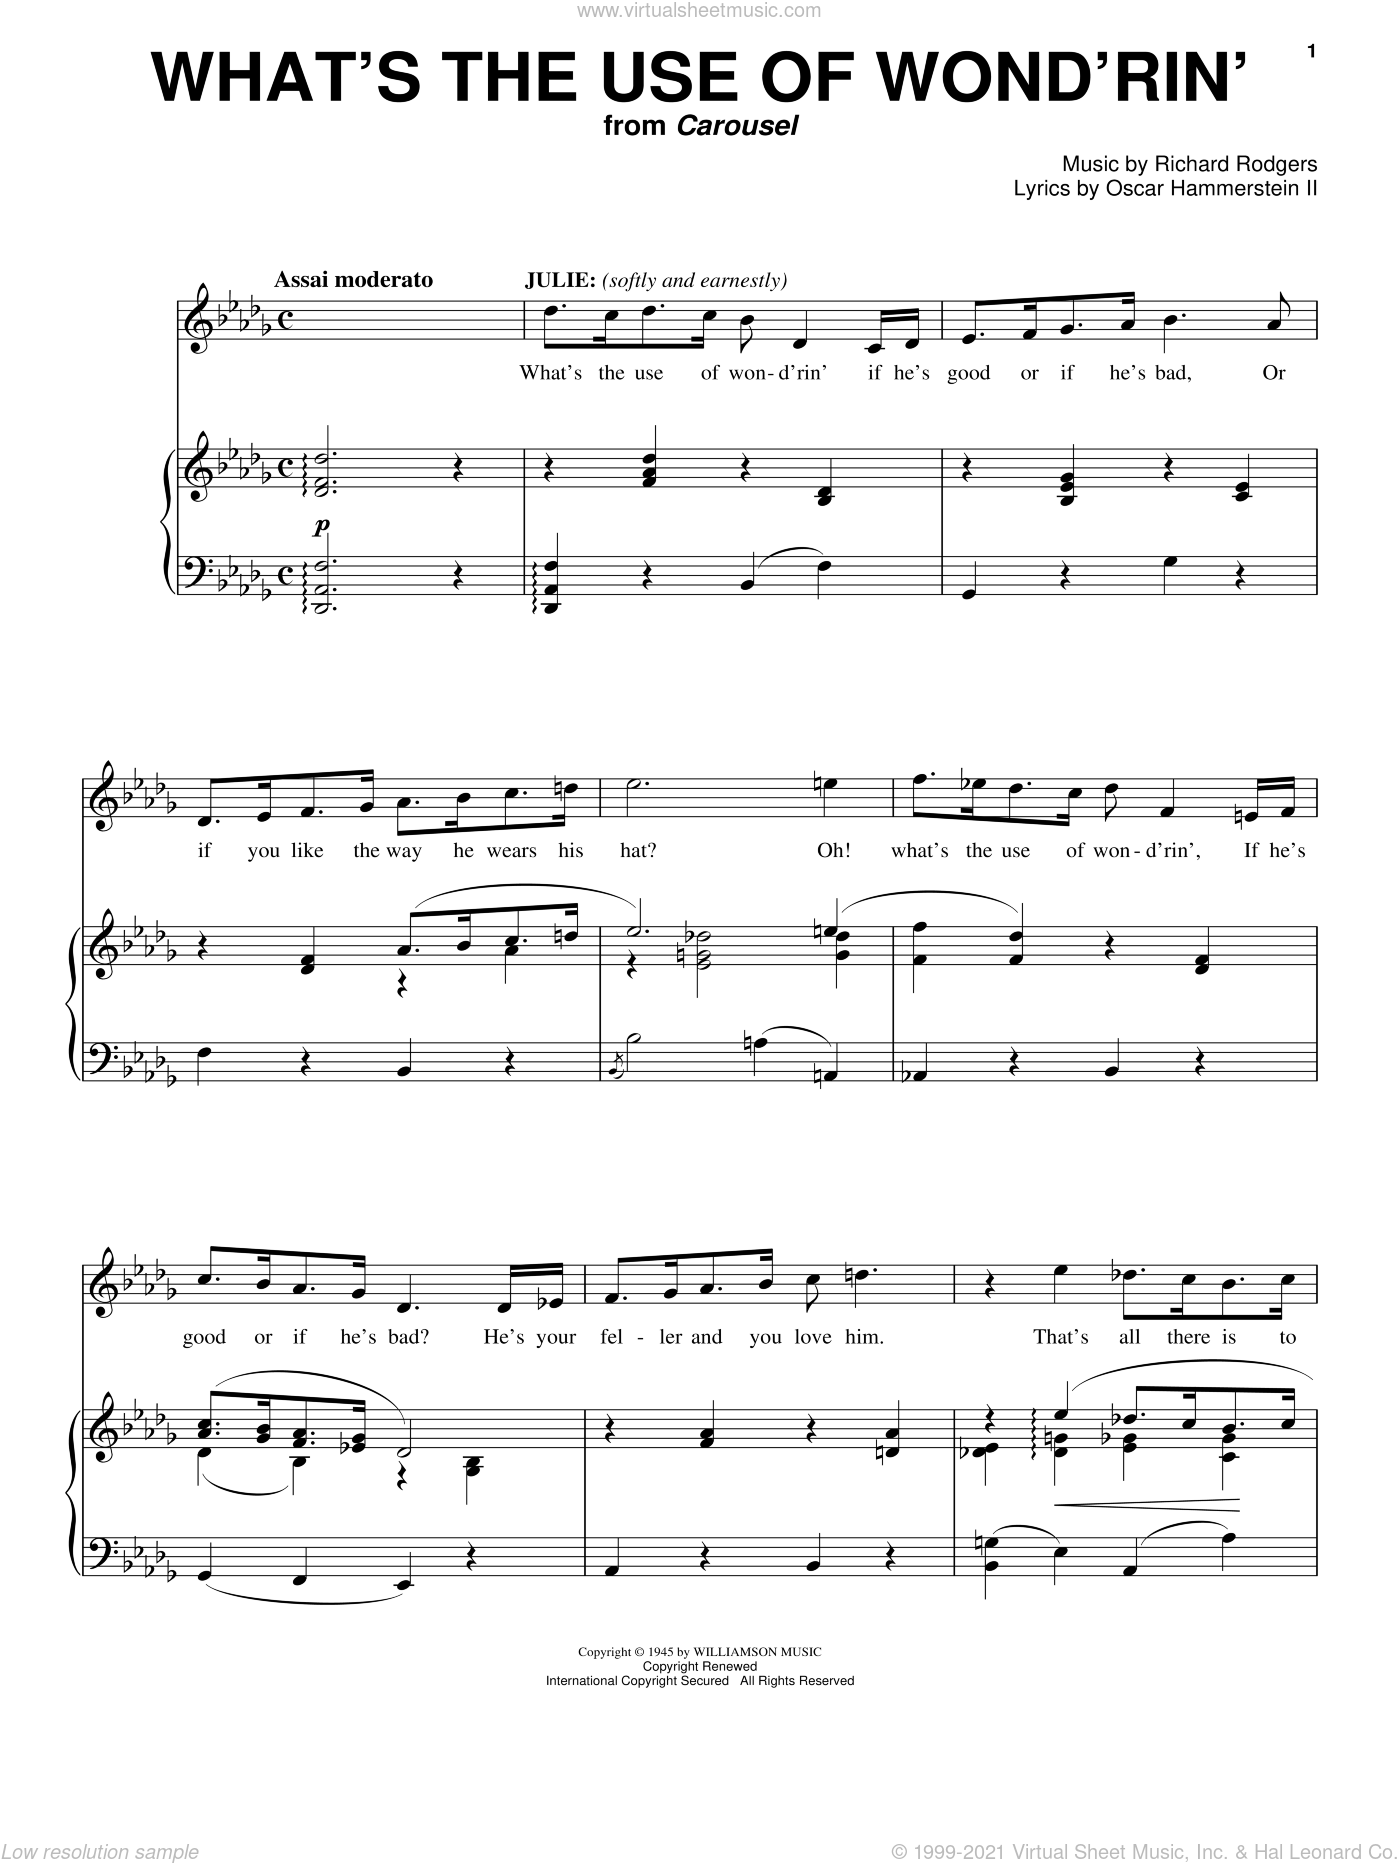 What's The Use Of Wond'rin' sheet music for voice and piano by Richard Rodgers